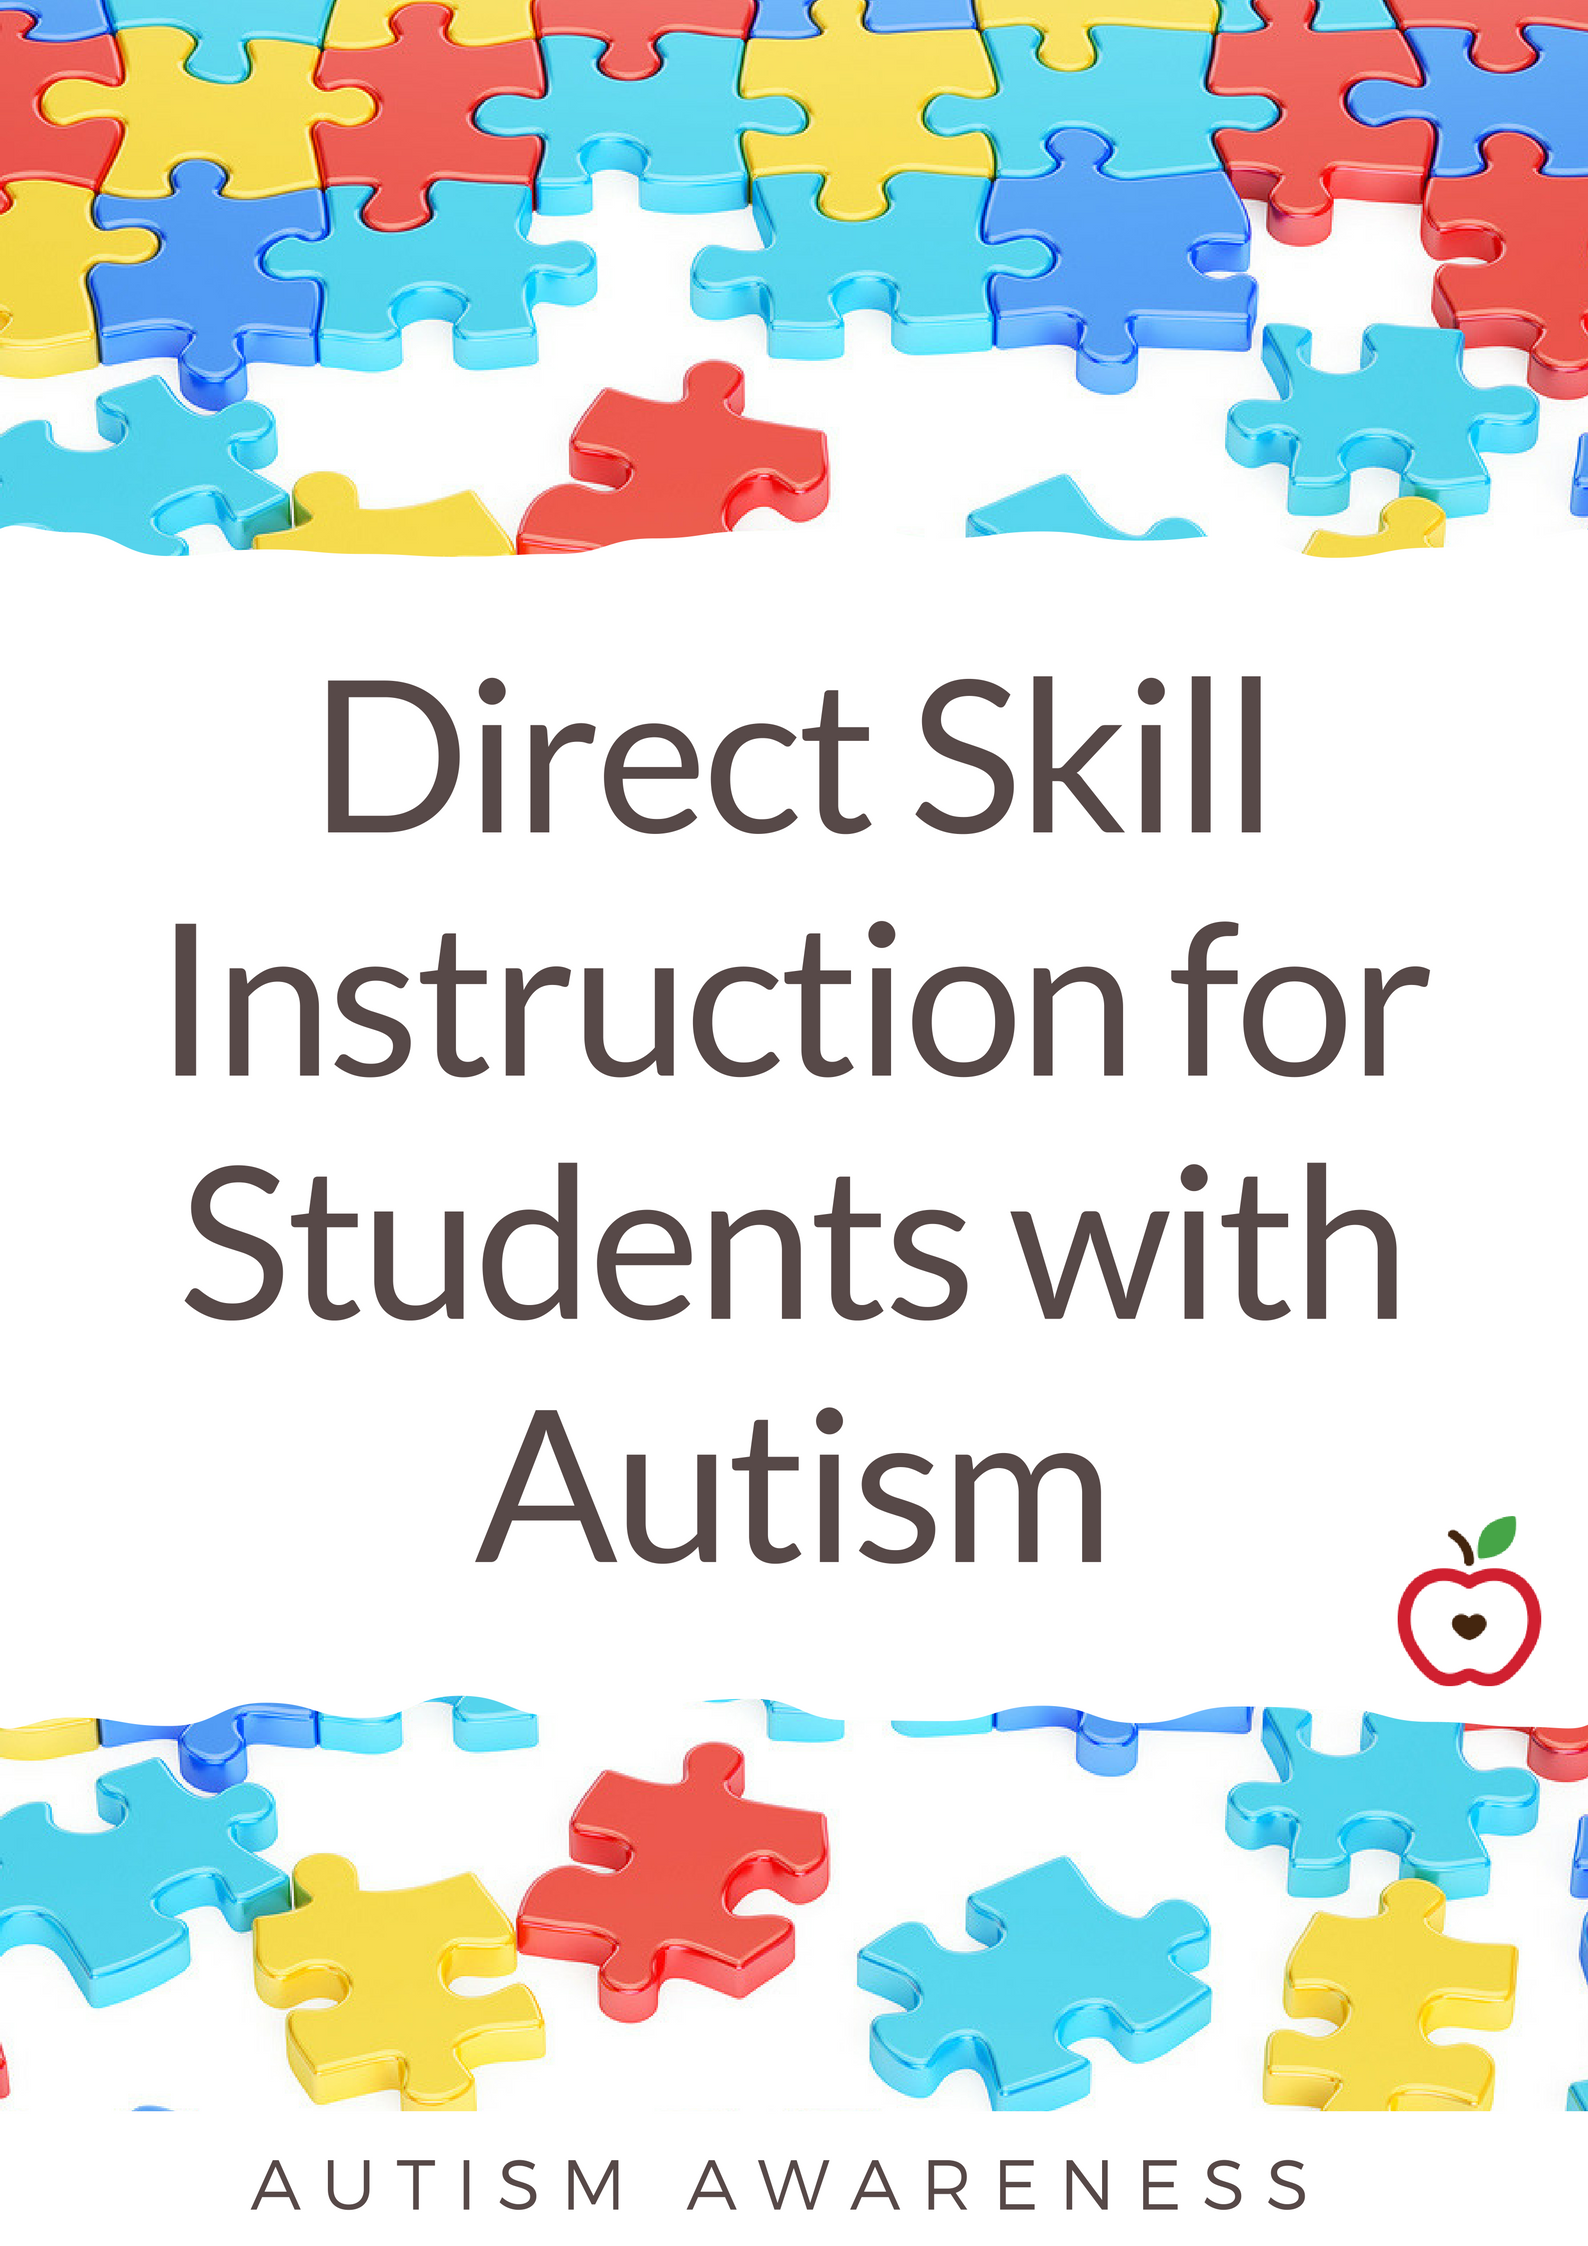 Direct Skill Instruction for Students with Autism